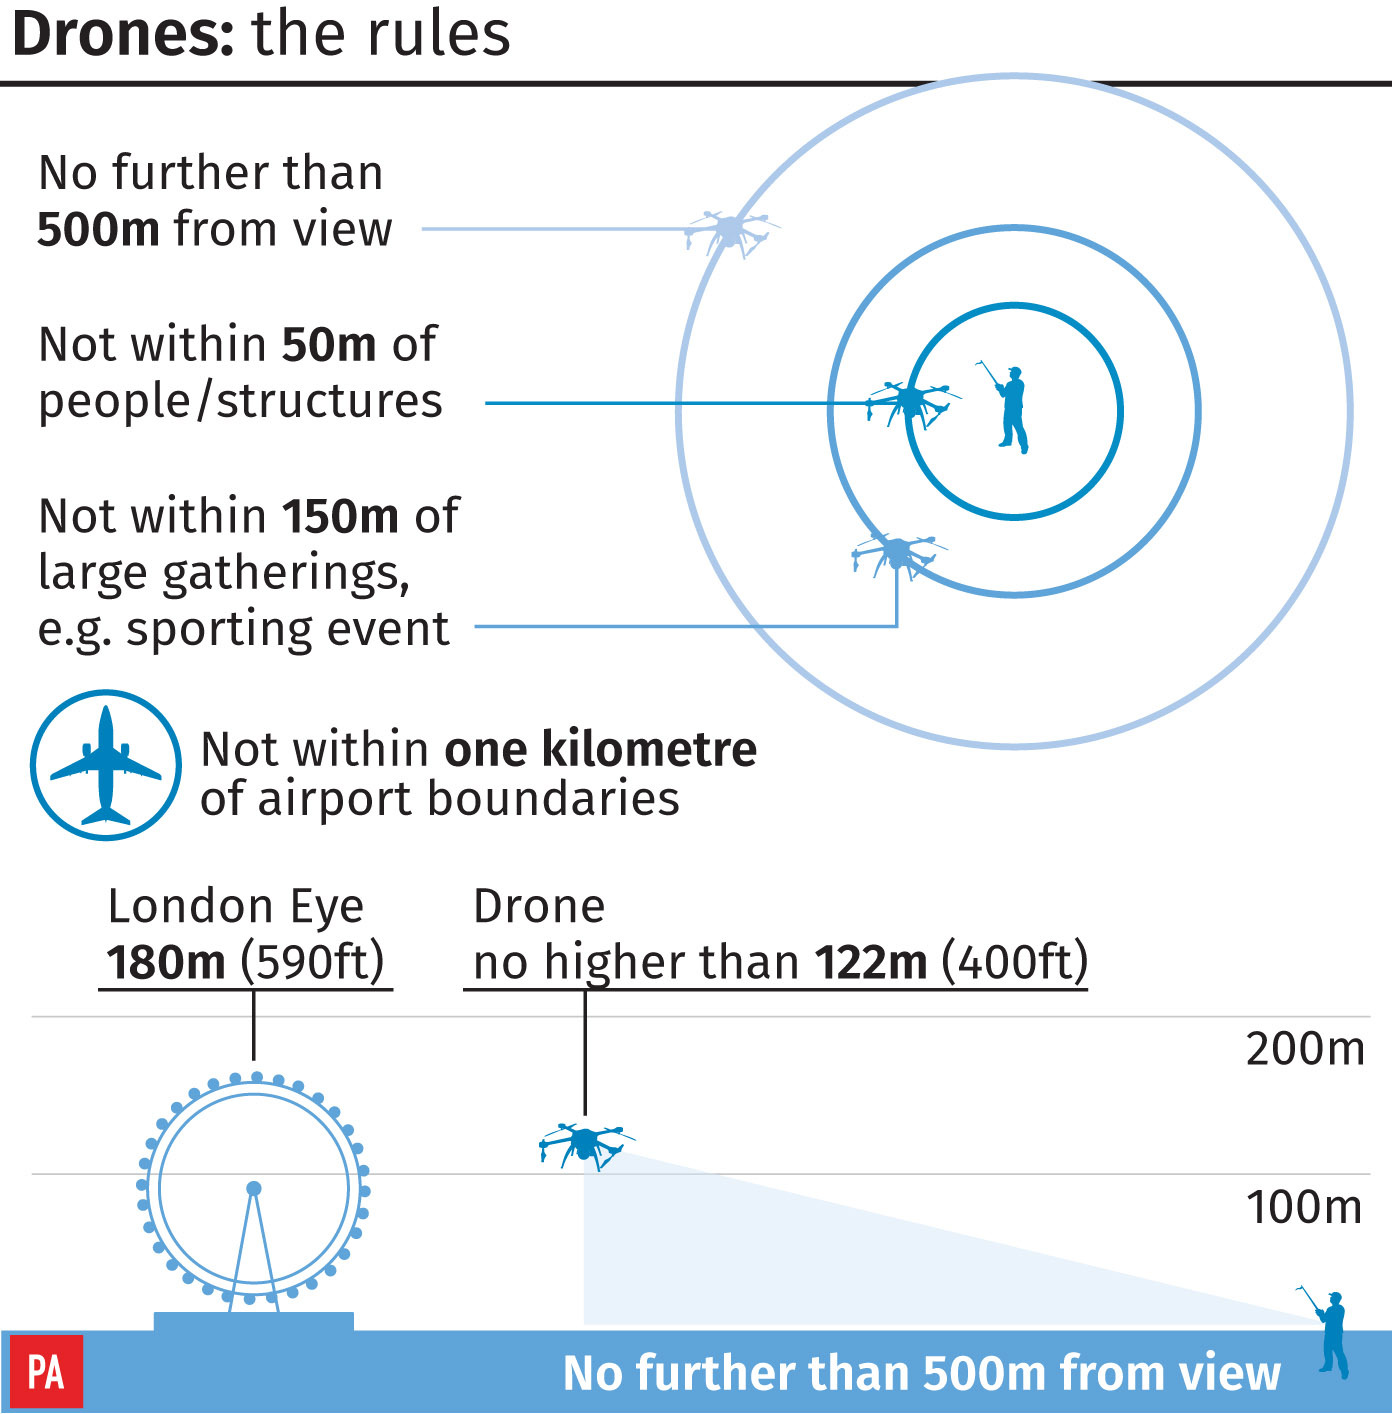 Drone sighting stops flights out of London's Heathrow Airport